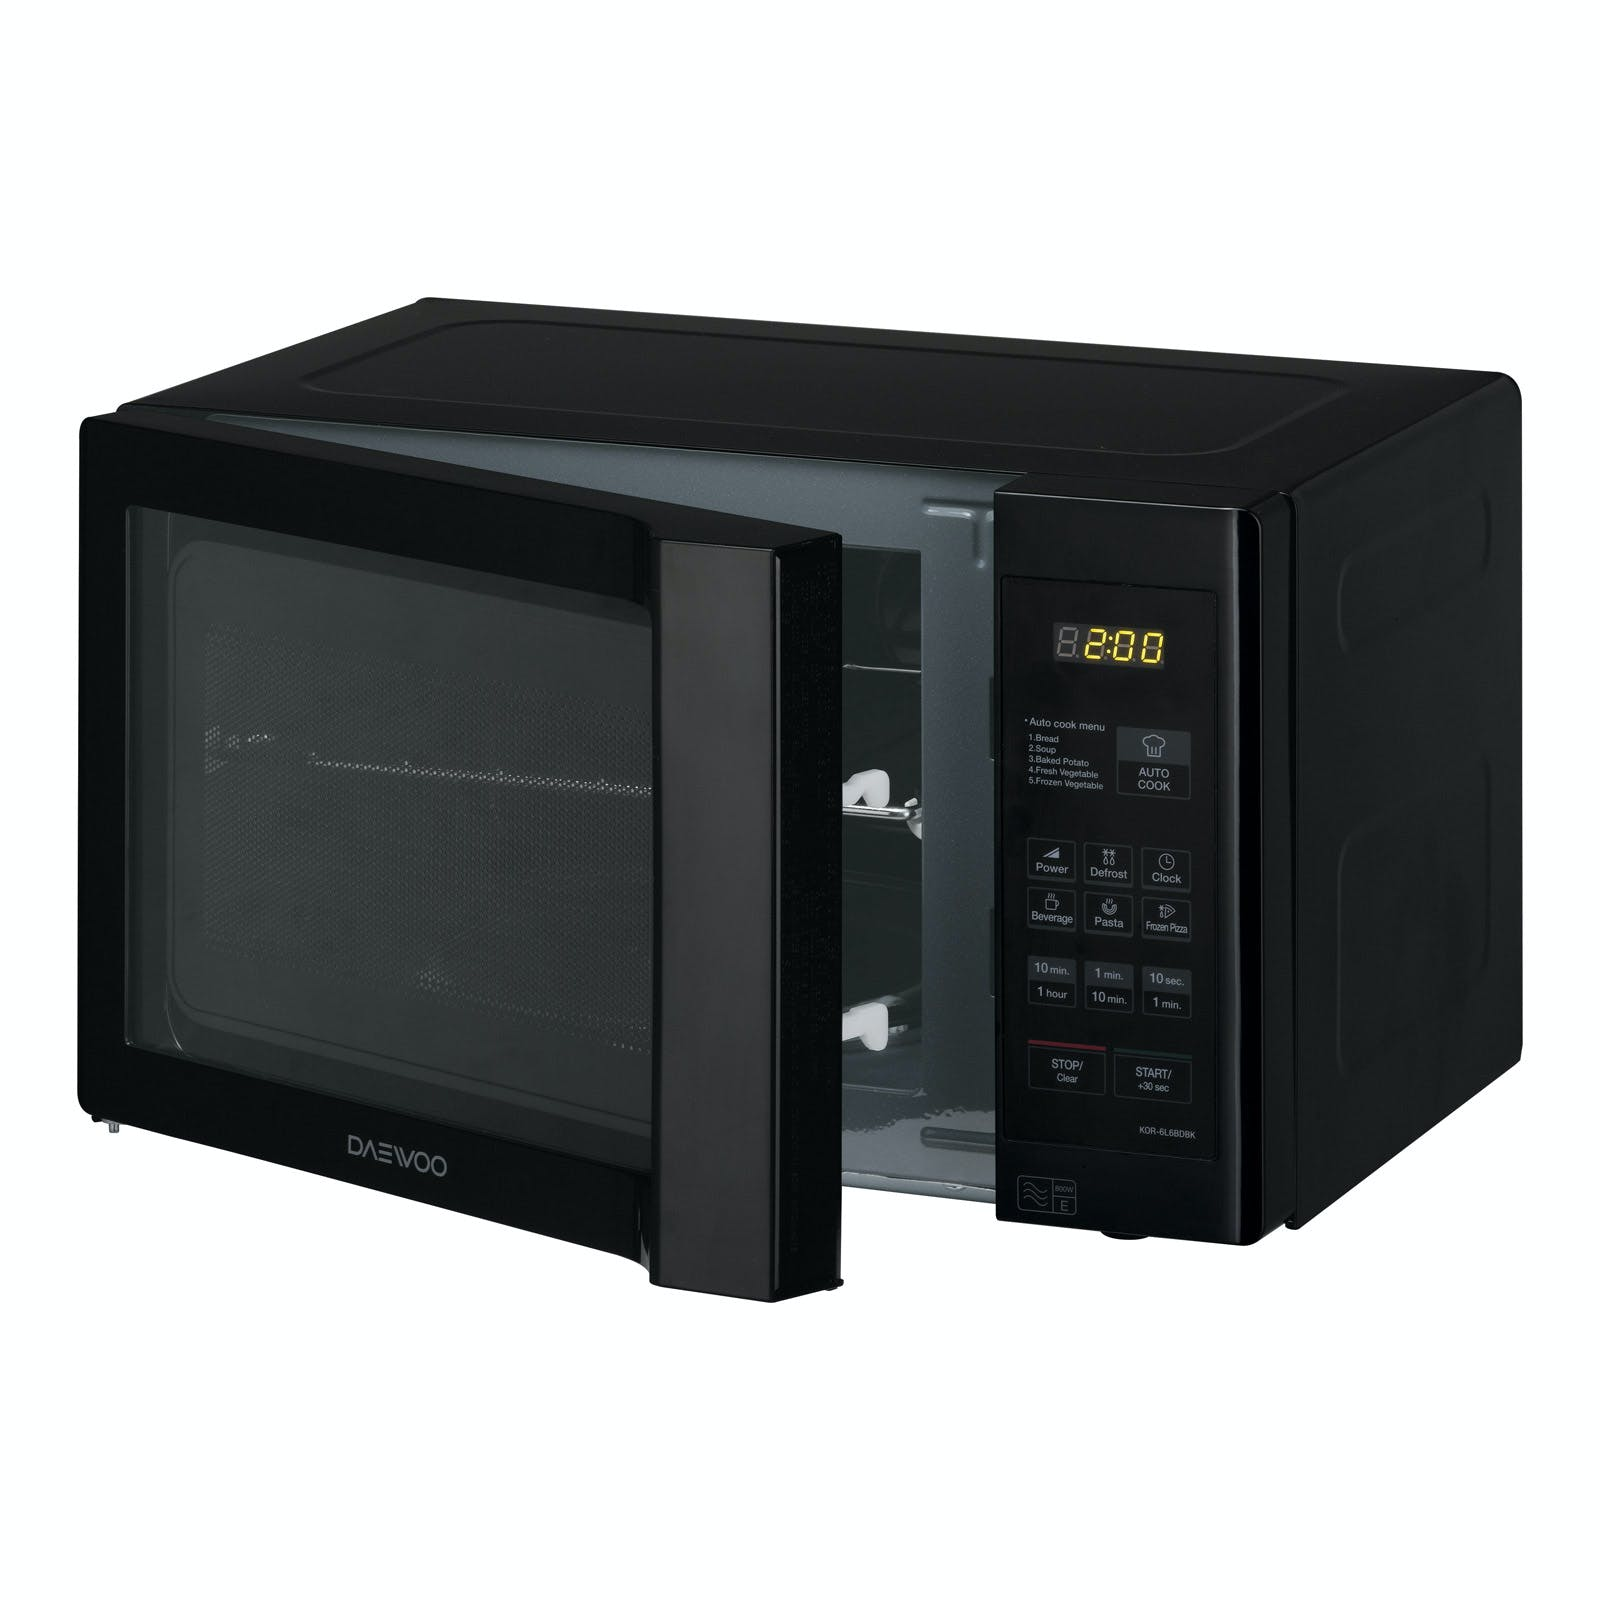 Daewoo KOR6L6BDBK Microwave Oven in Black, 20L 800W Touch Controls